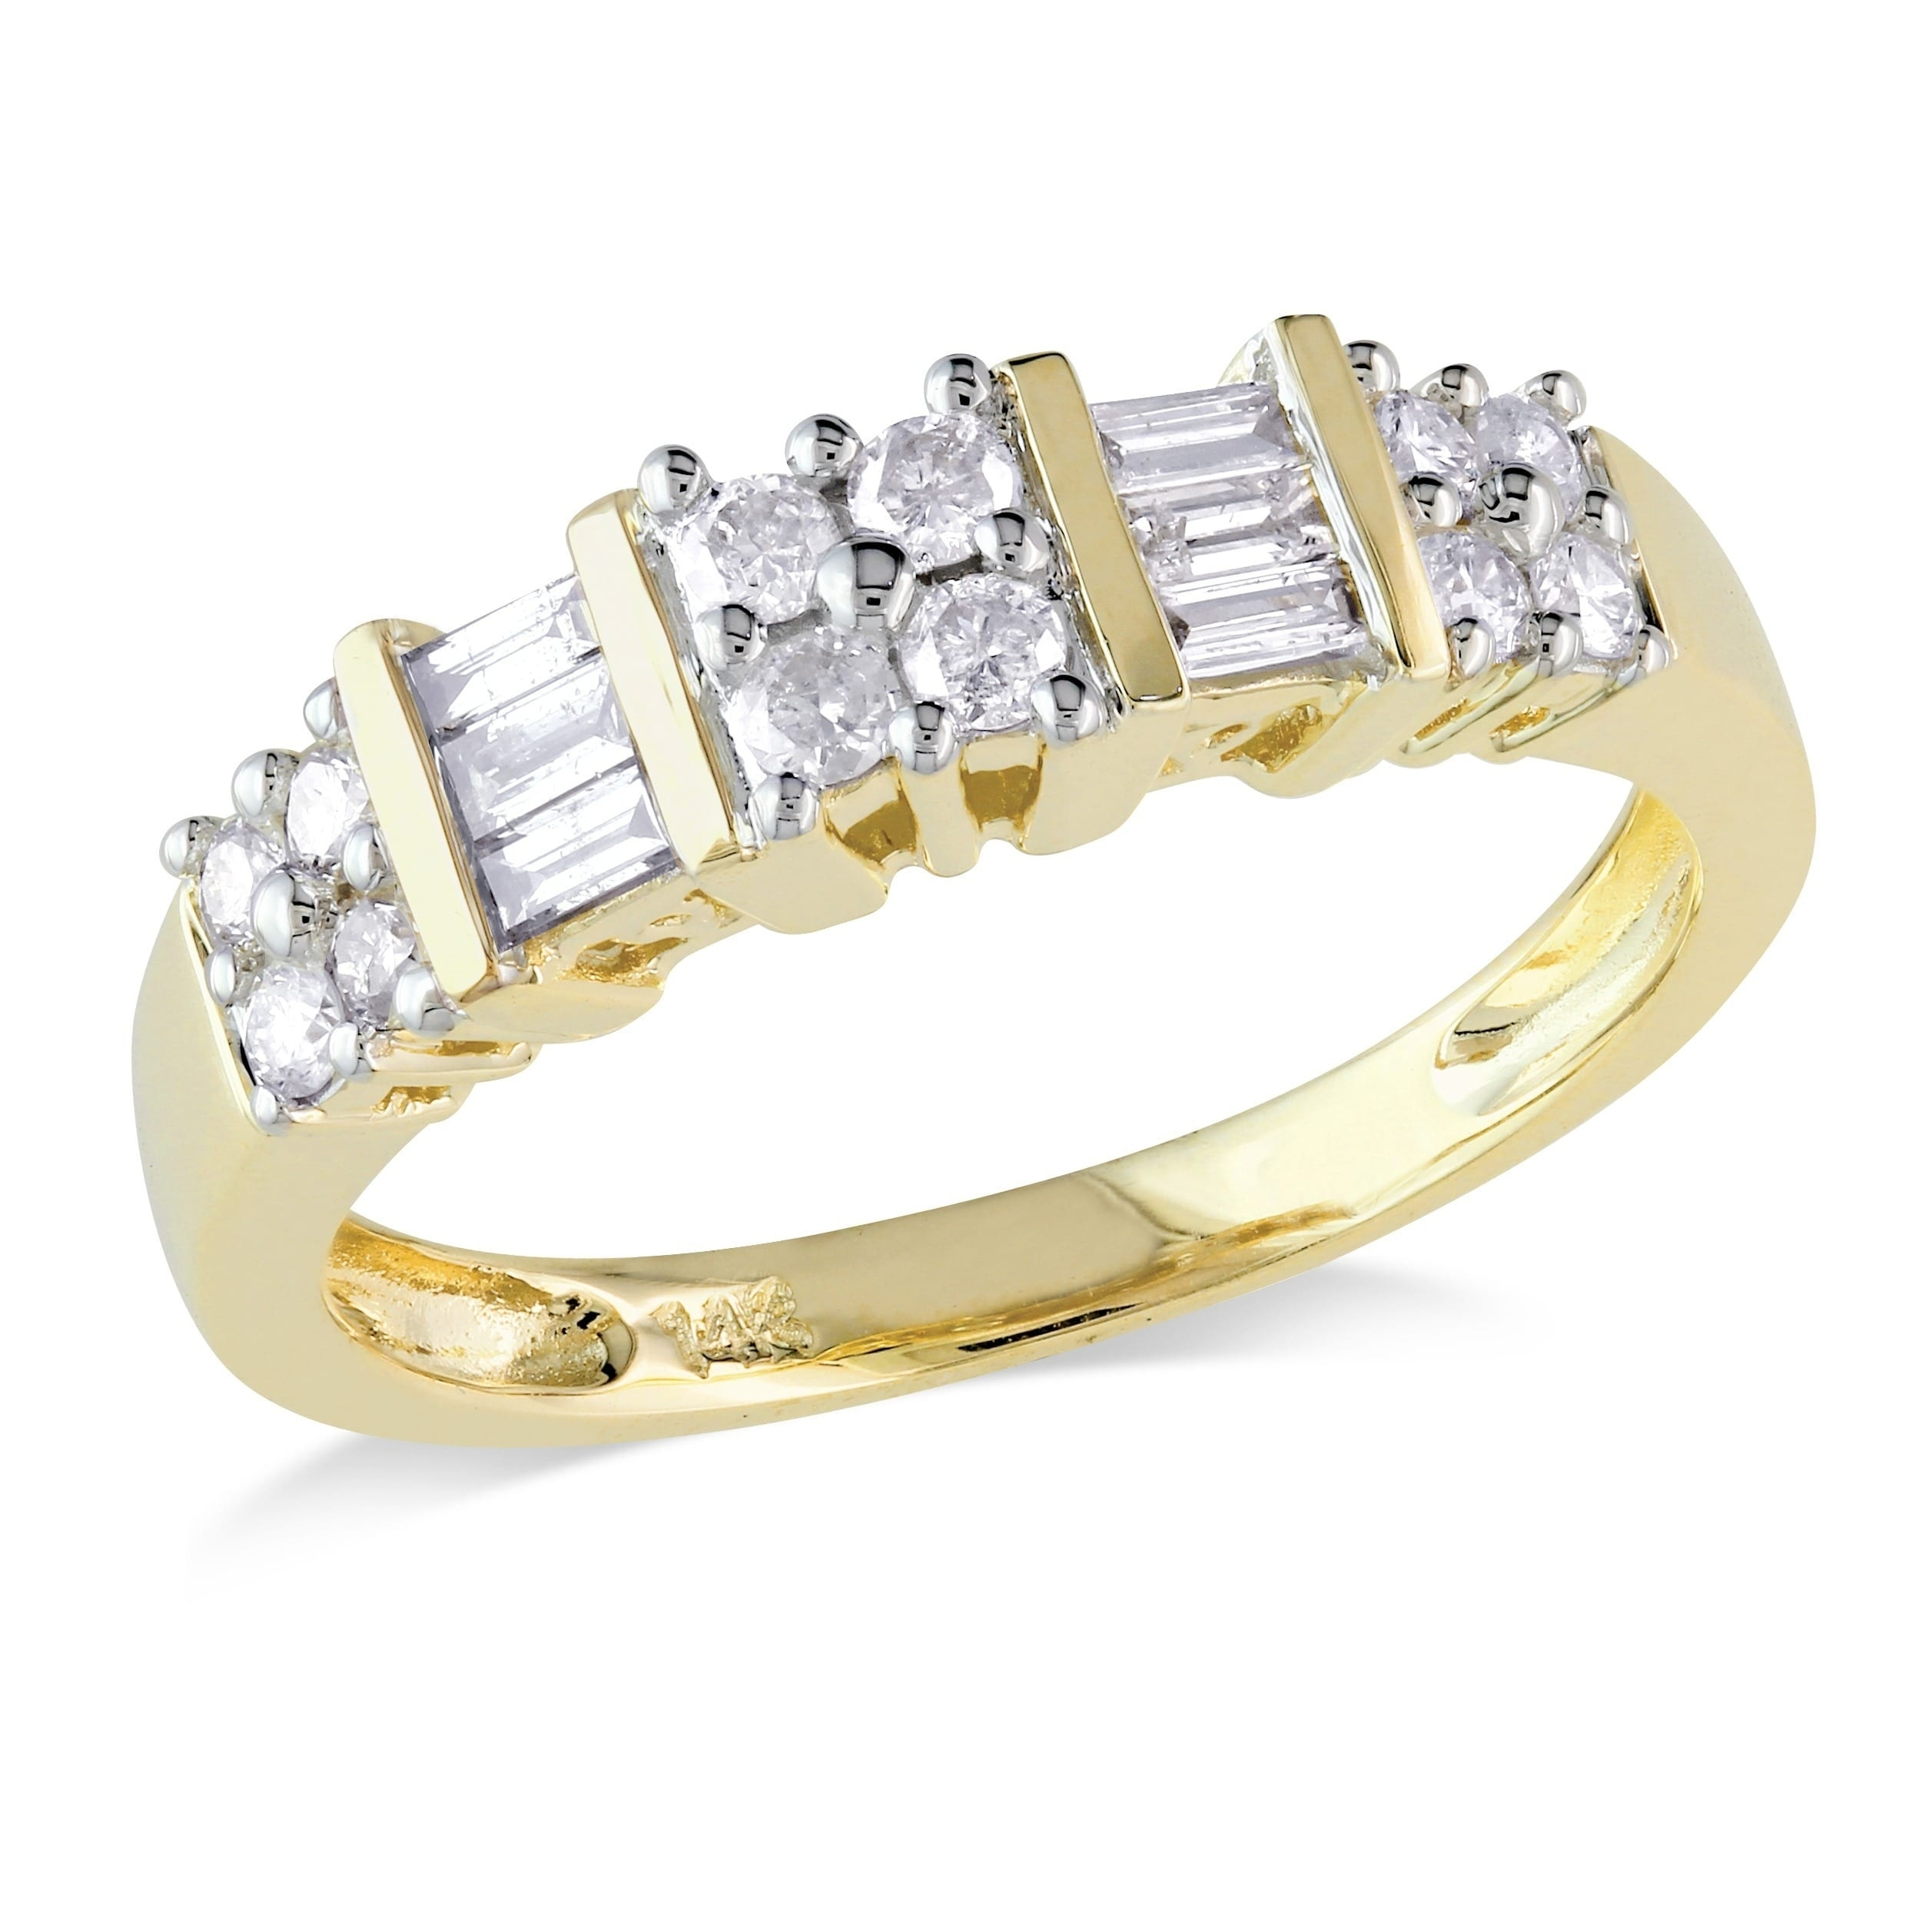 Shop Miadora 14K Yellow Gold 1/2Ct Tdw Baguette Diamond Anniversary Pertaining To 2017 Round And Baguette Diamond Anniversary Bands In 14K White Gold (Gallery 11 of 15)